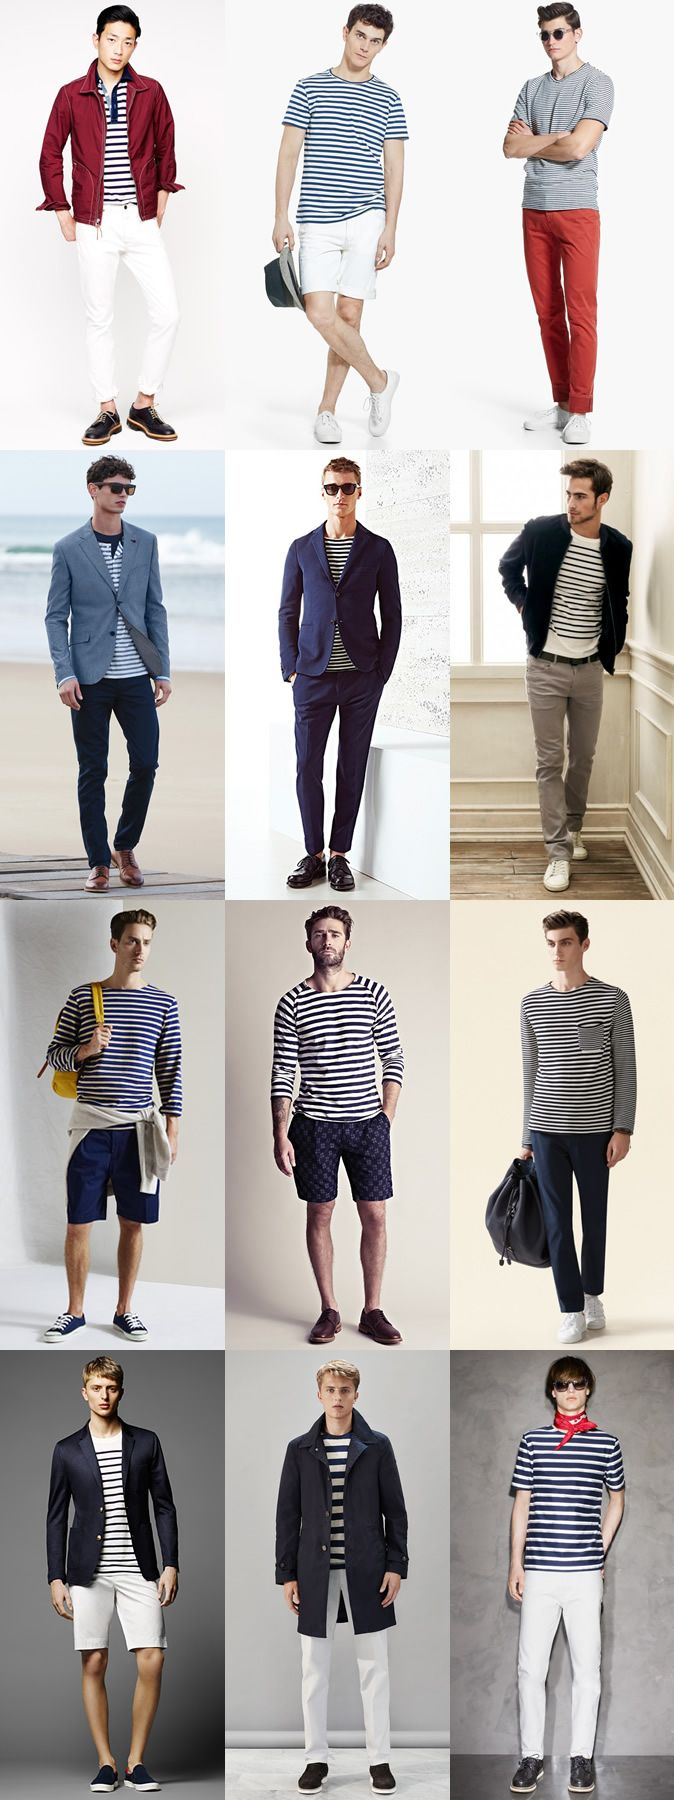 Men's Summer Nautical Style: Breton Stripe T-Shirts and Tops Outfit Inspiration Lookbook